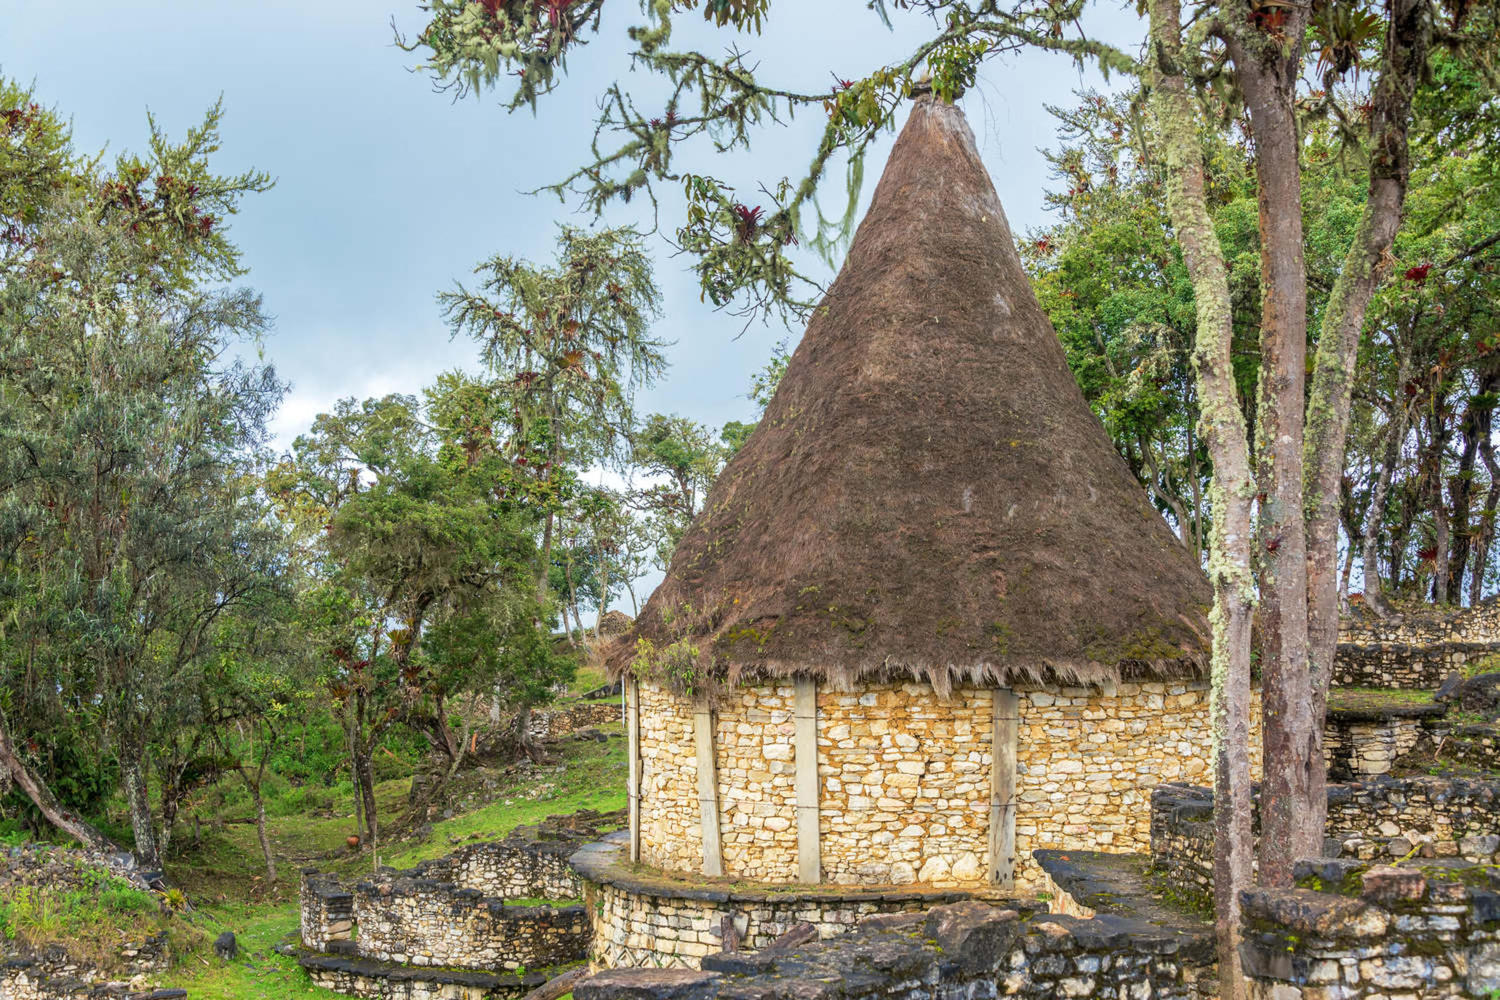 Ancient house with a thatch roof in the ruins of Kuelap